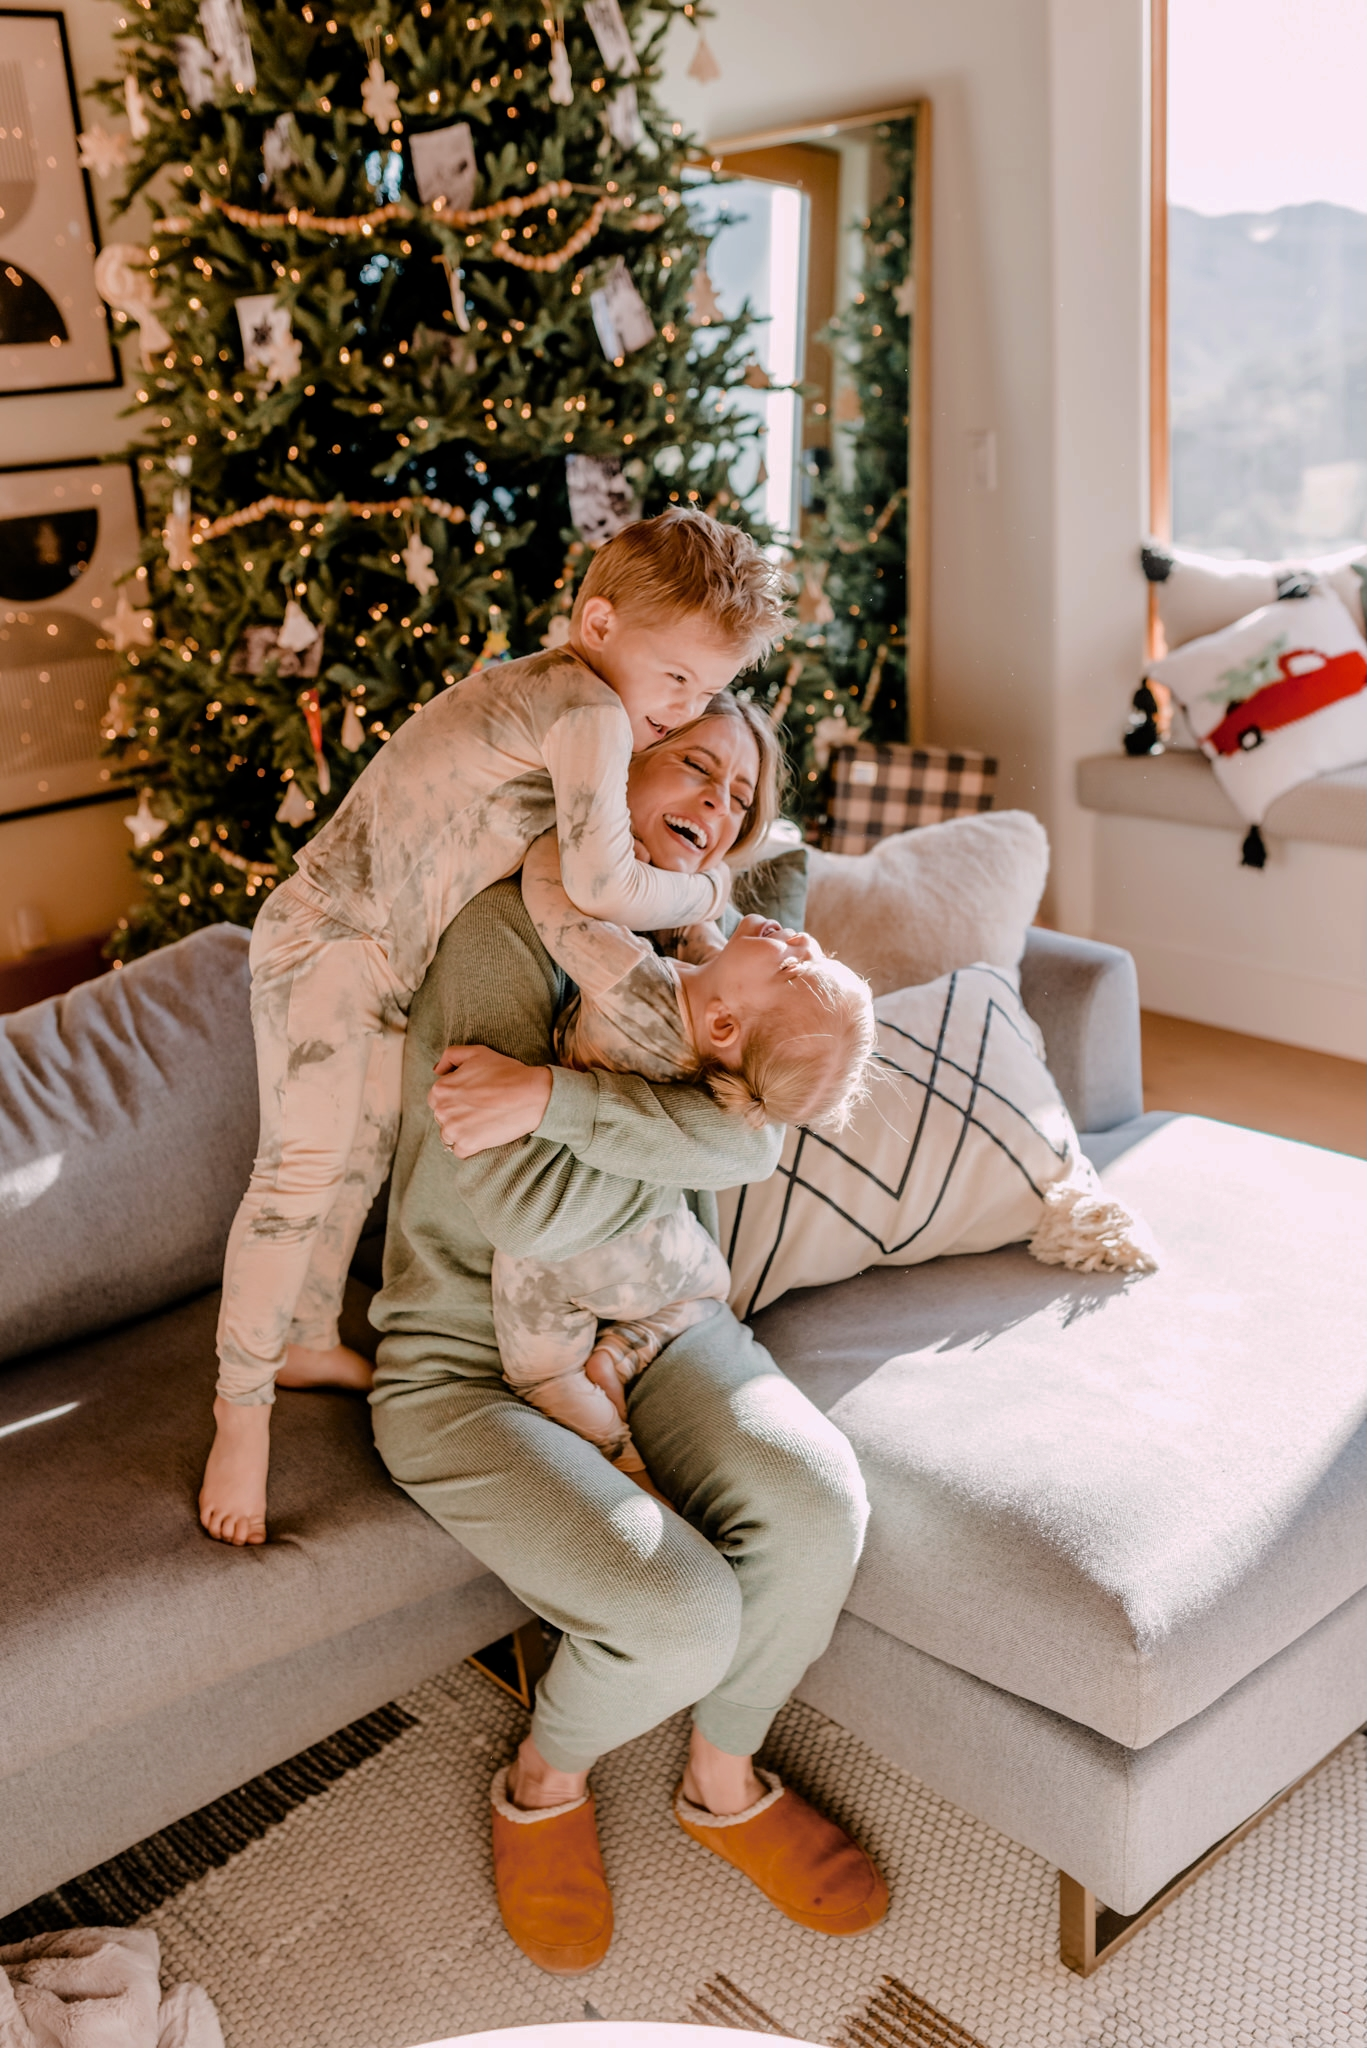 Walmart Membership by popular San Diego lifestyle blog, Navy Grace: image of a woman and her two small children wearing pajamas and sitting together on their grey sectional couch in front of their Christmas tree.